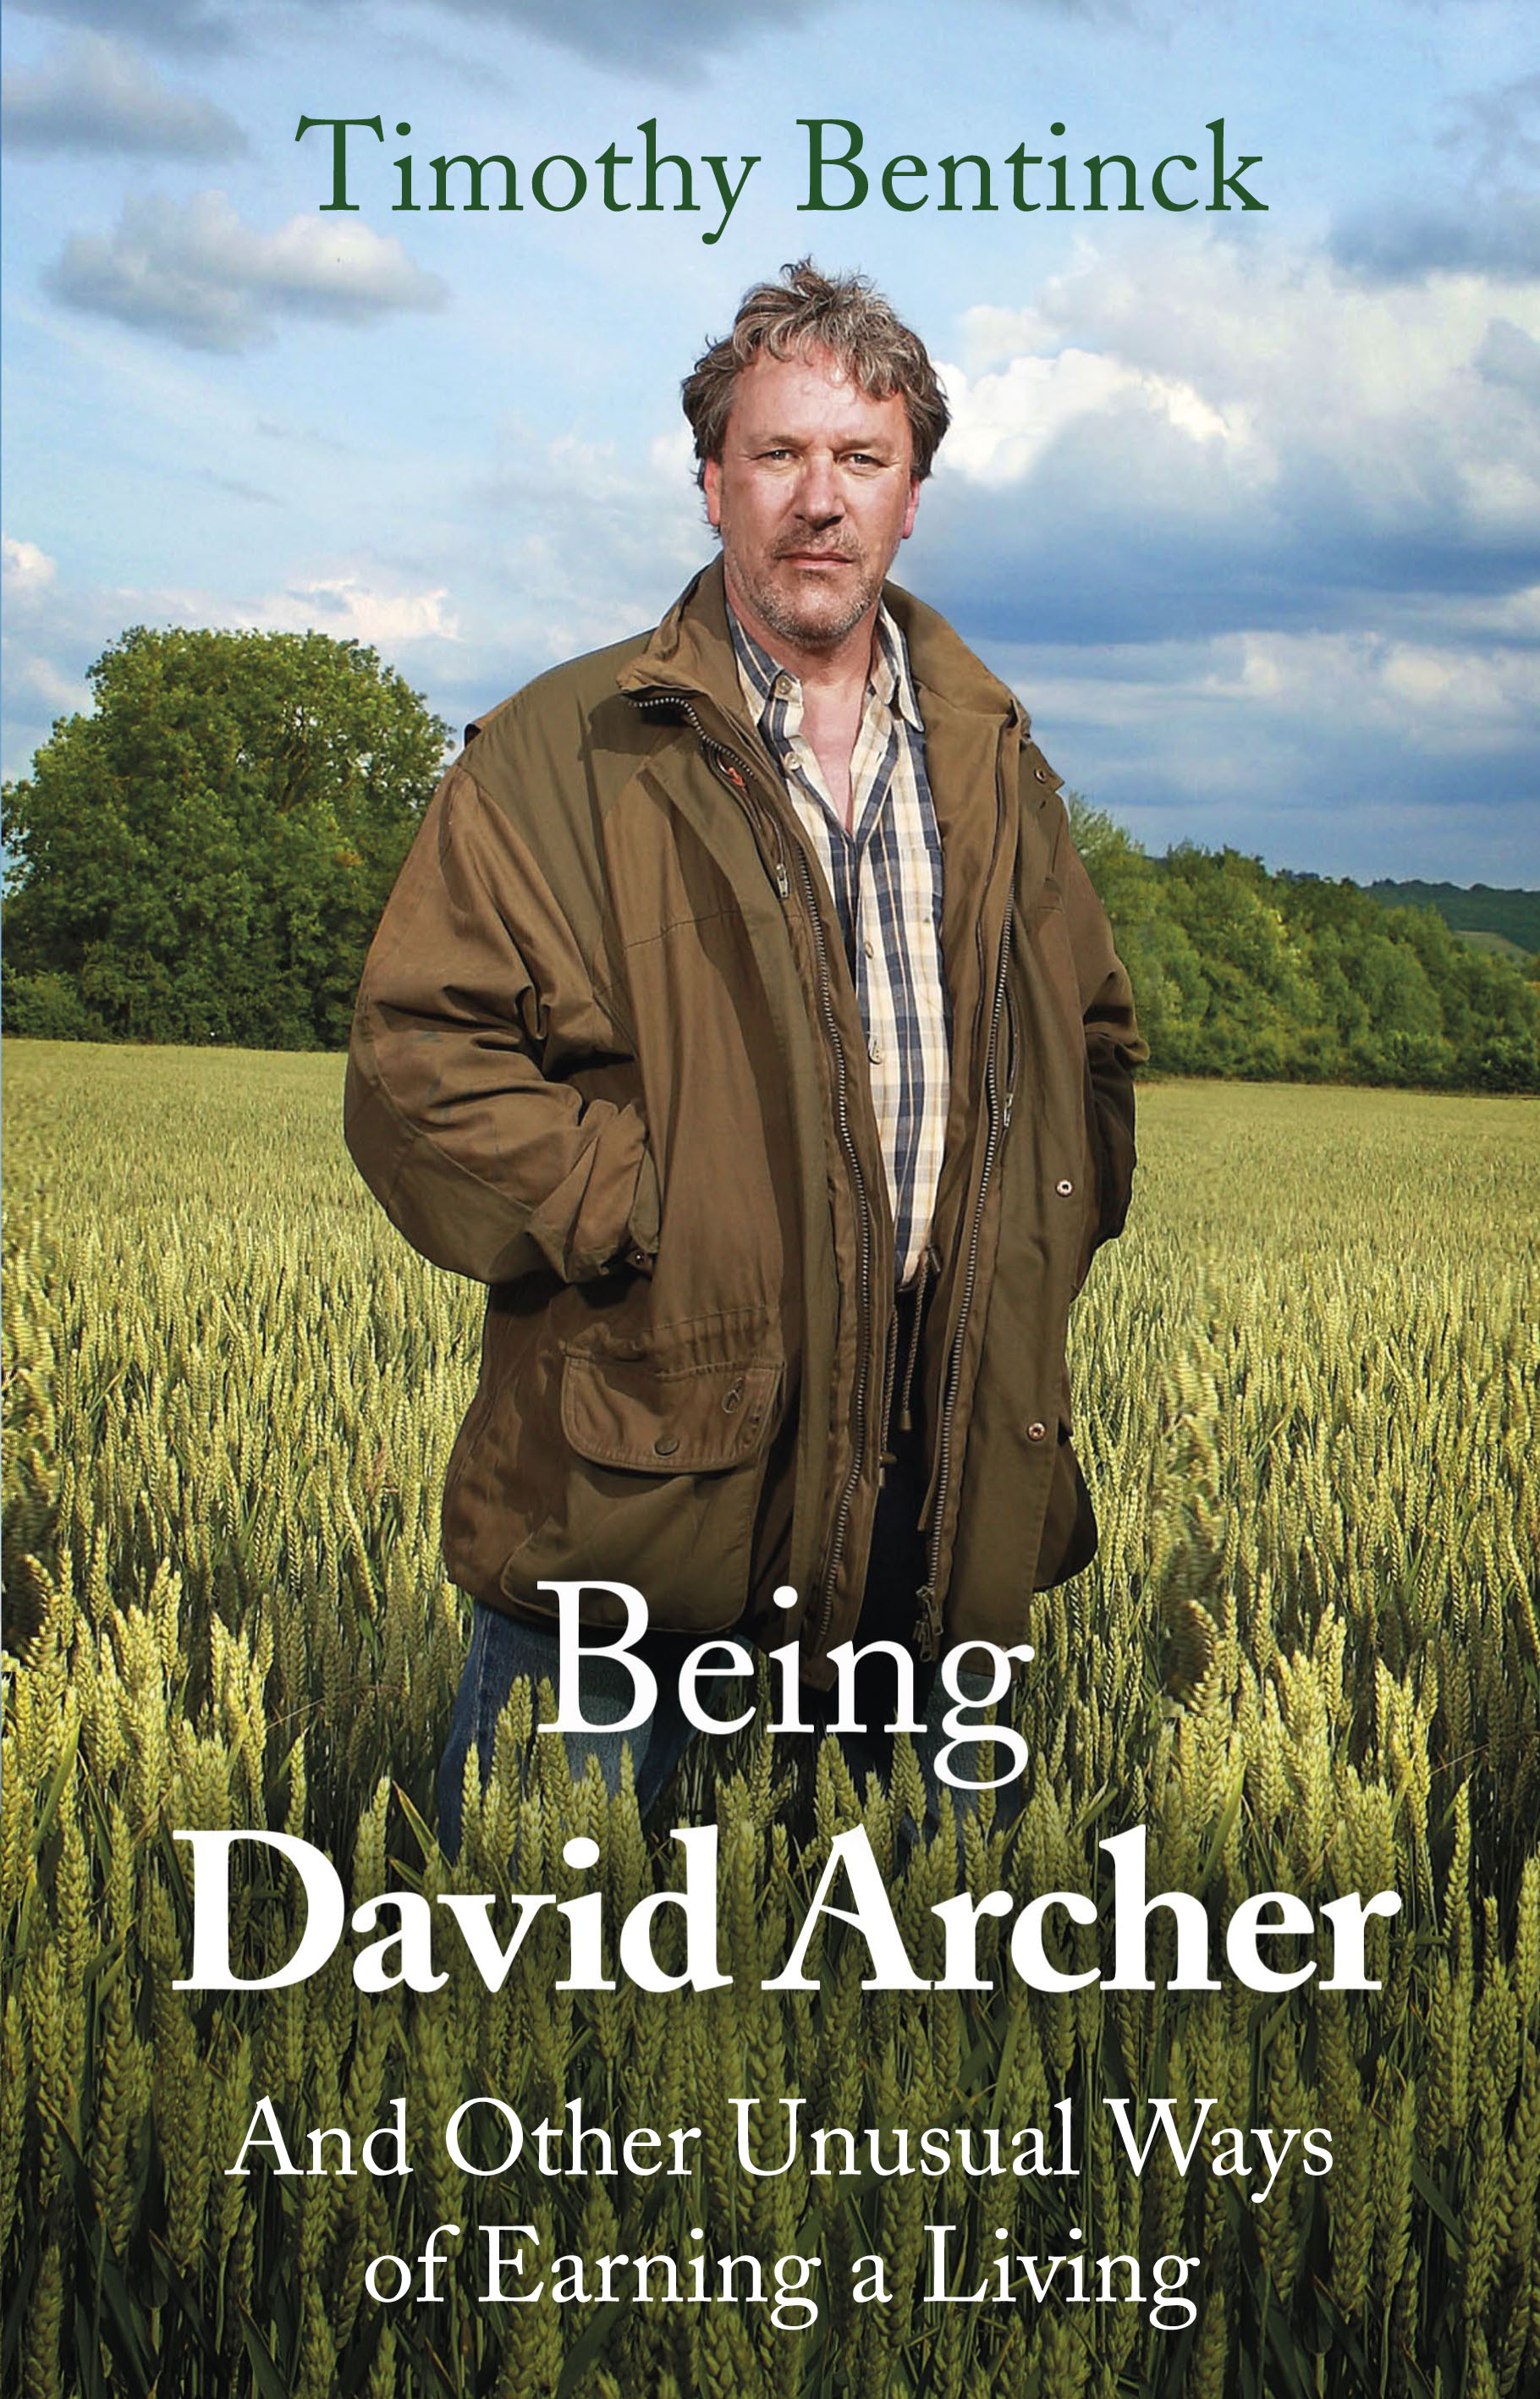 Being David Archer and Other Unusual Ways of Earning a Living